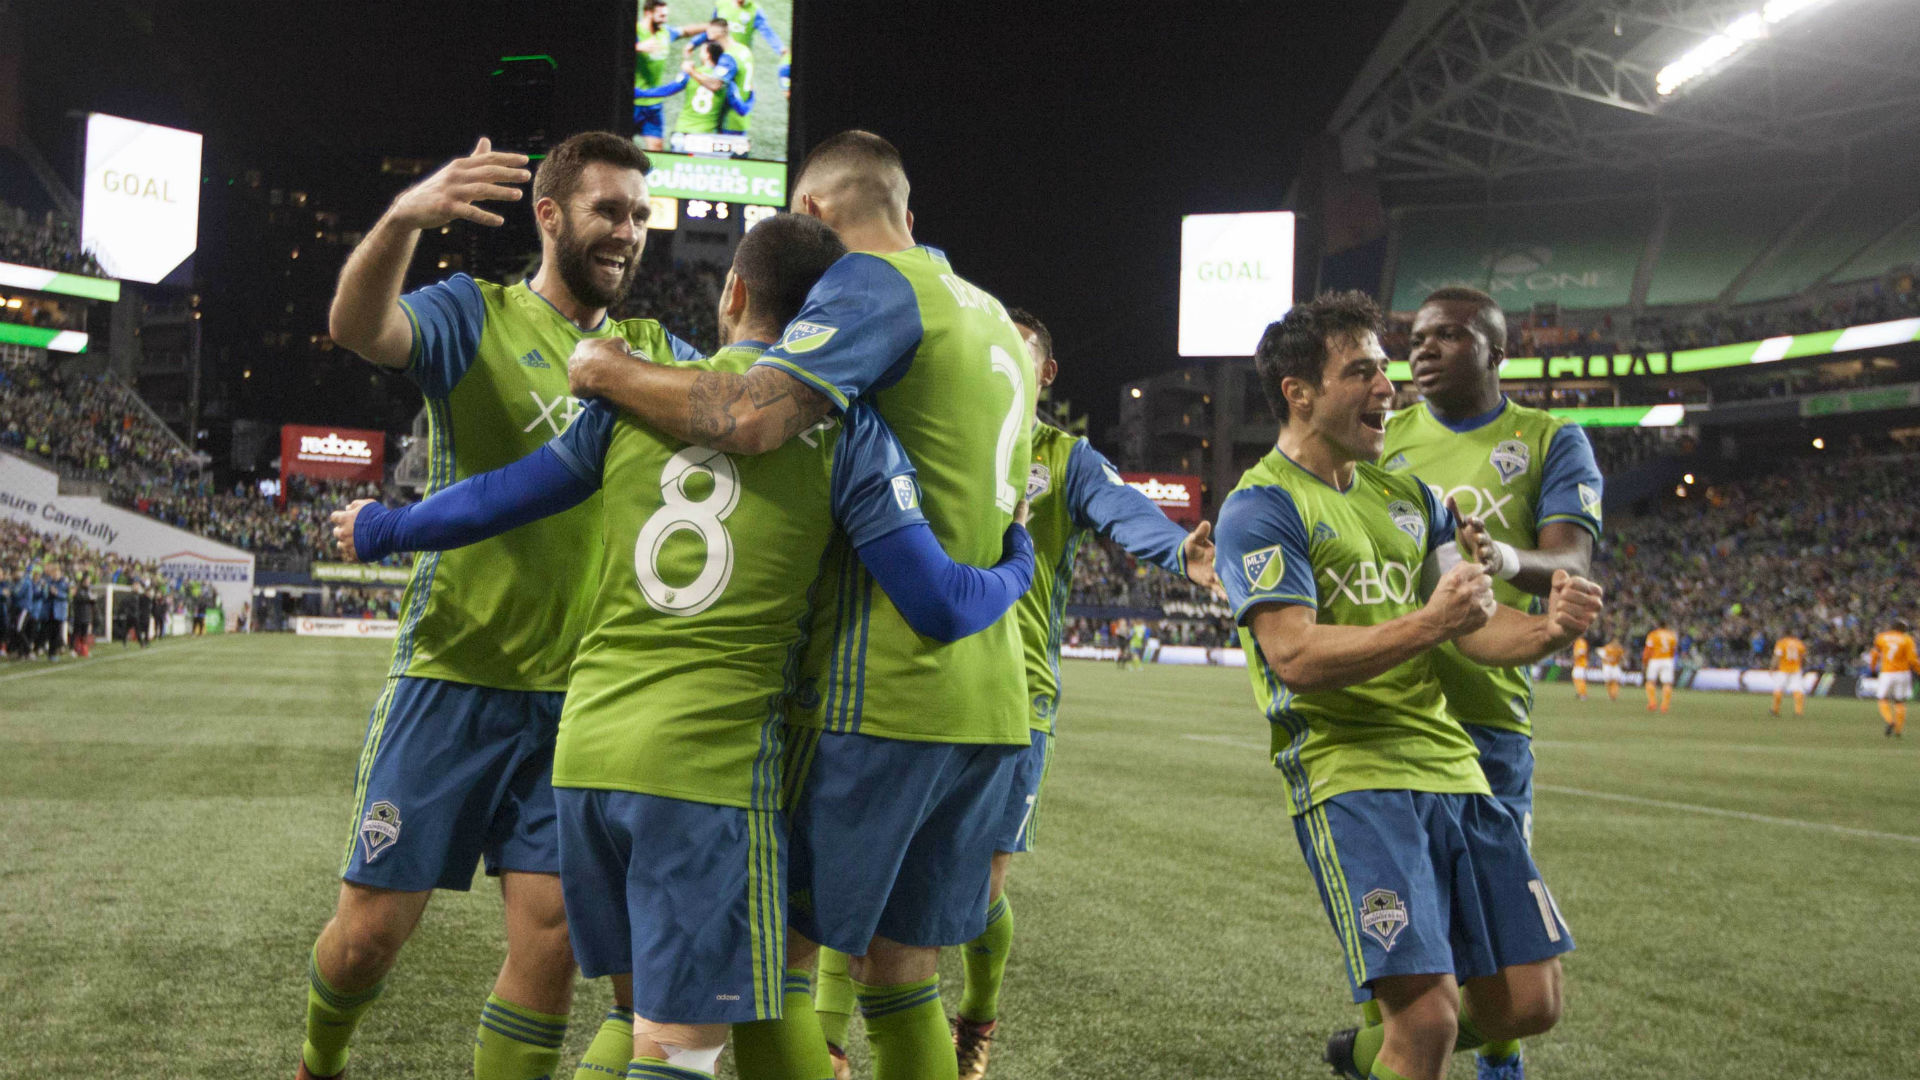 meet and greet seattle sounders soccer